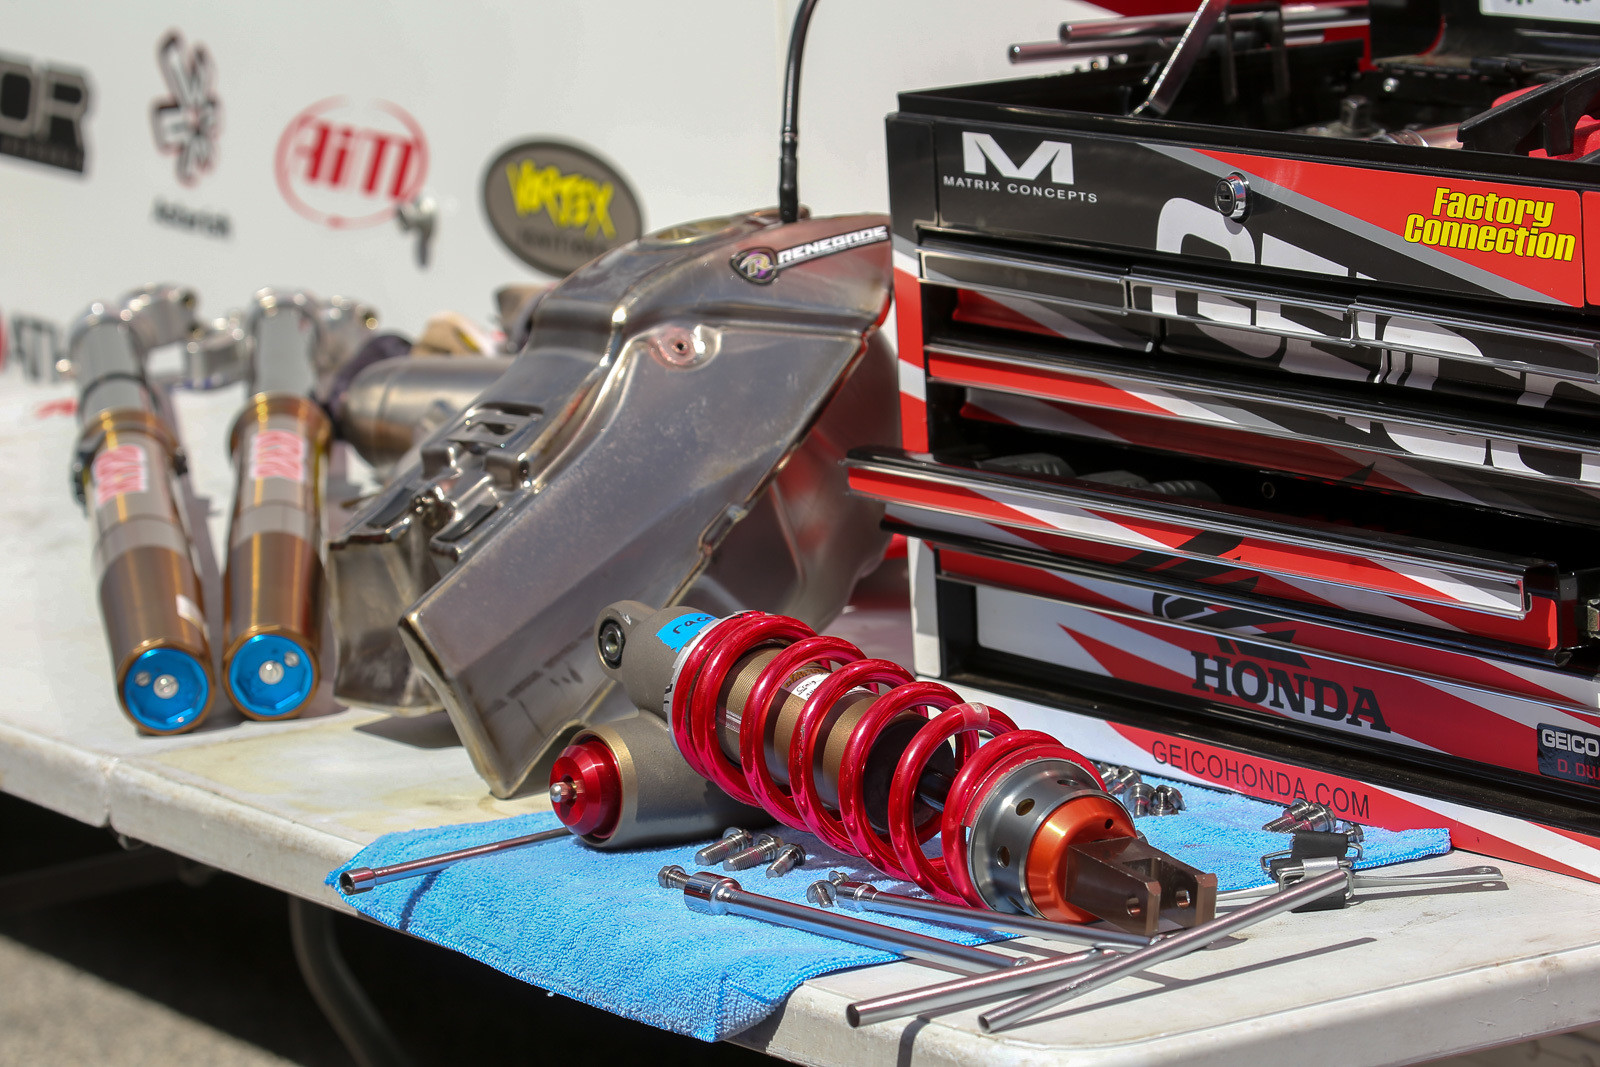 We love seeing a workbench scattered with trick goodies, like over at the GEICO Honda truck.